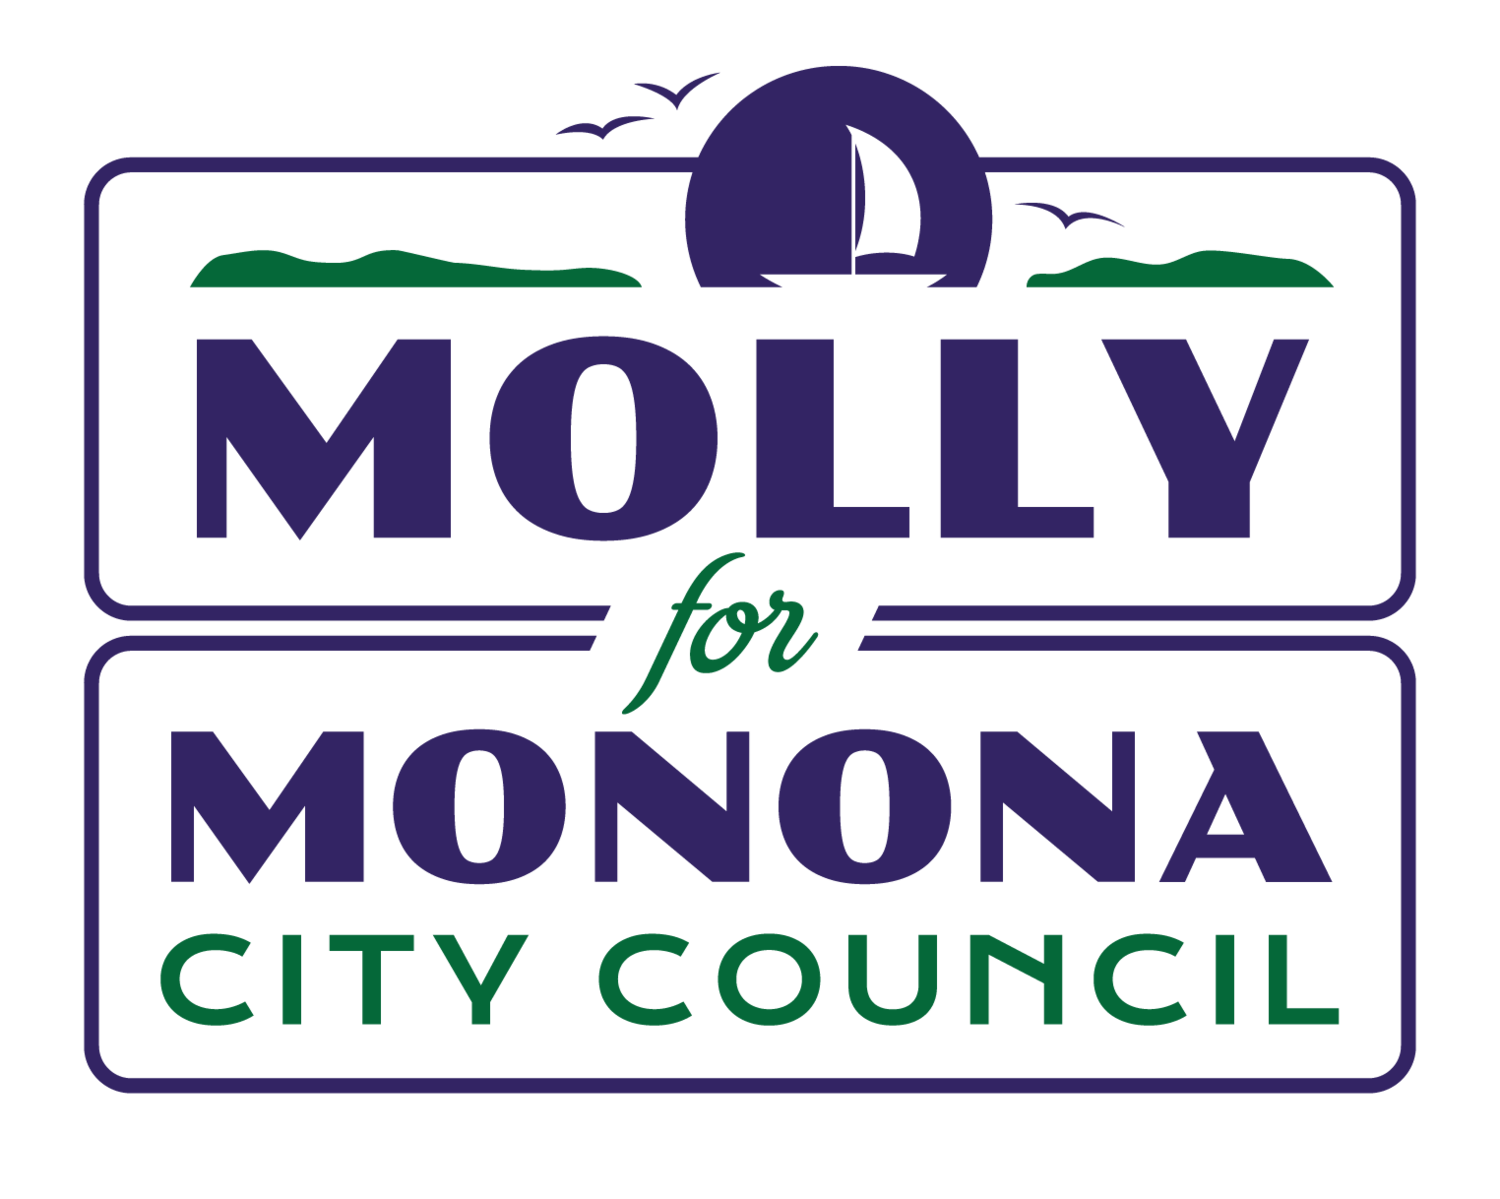 Molly for Monona